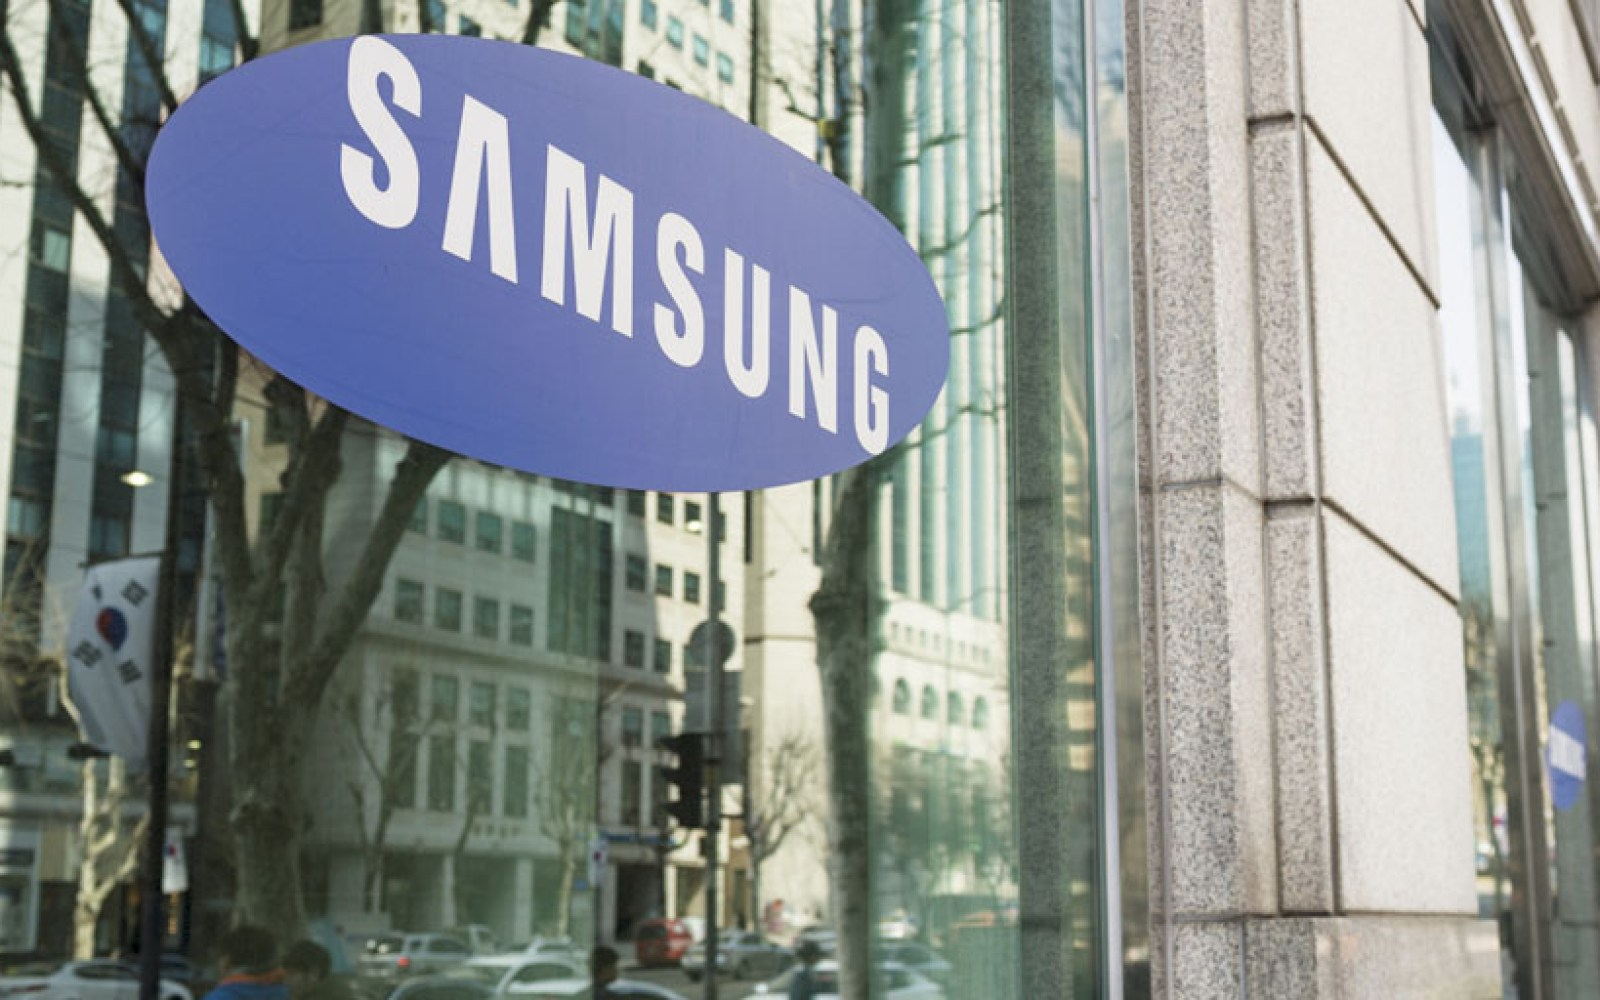 Latest U.S. smartphone market numbers show Apple in the lead, but Samsung is catching up